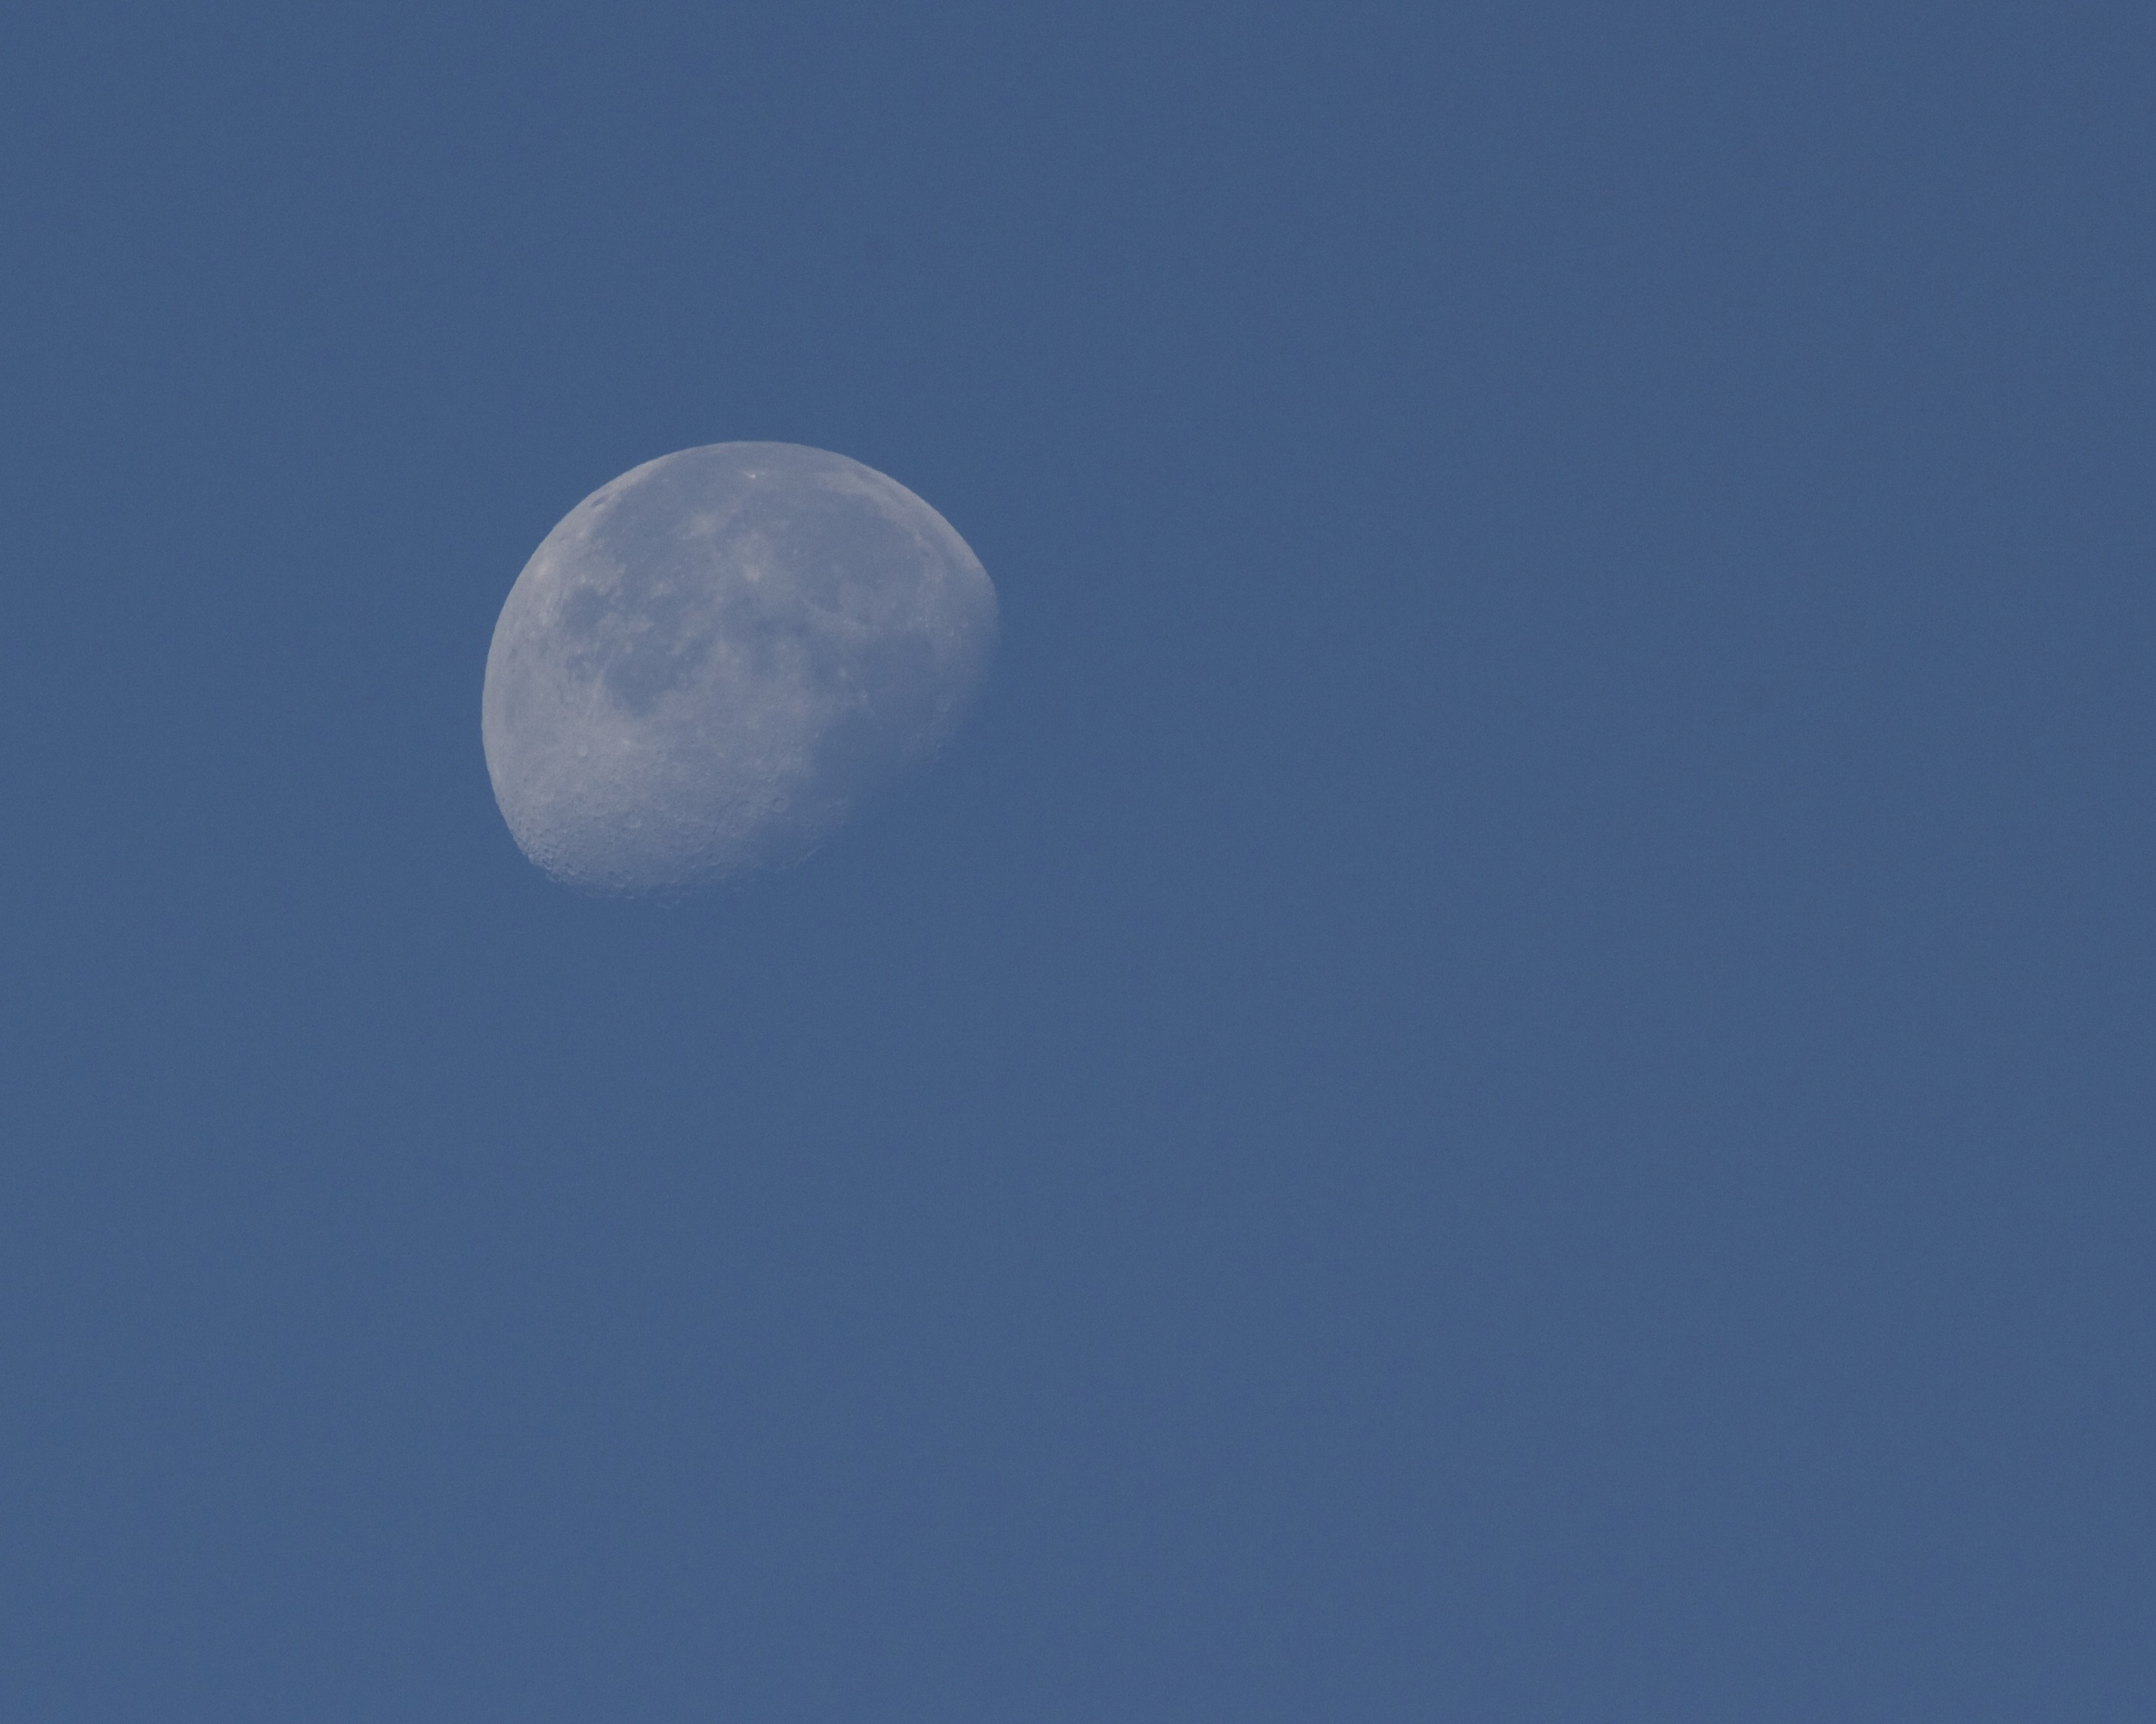 The waning moon shines in the early morning sky.